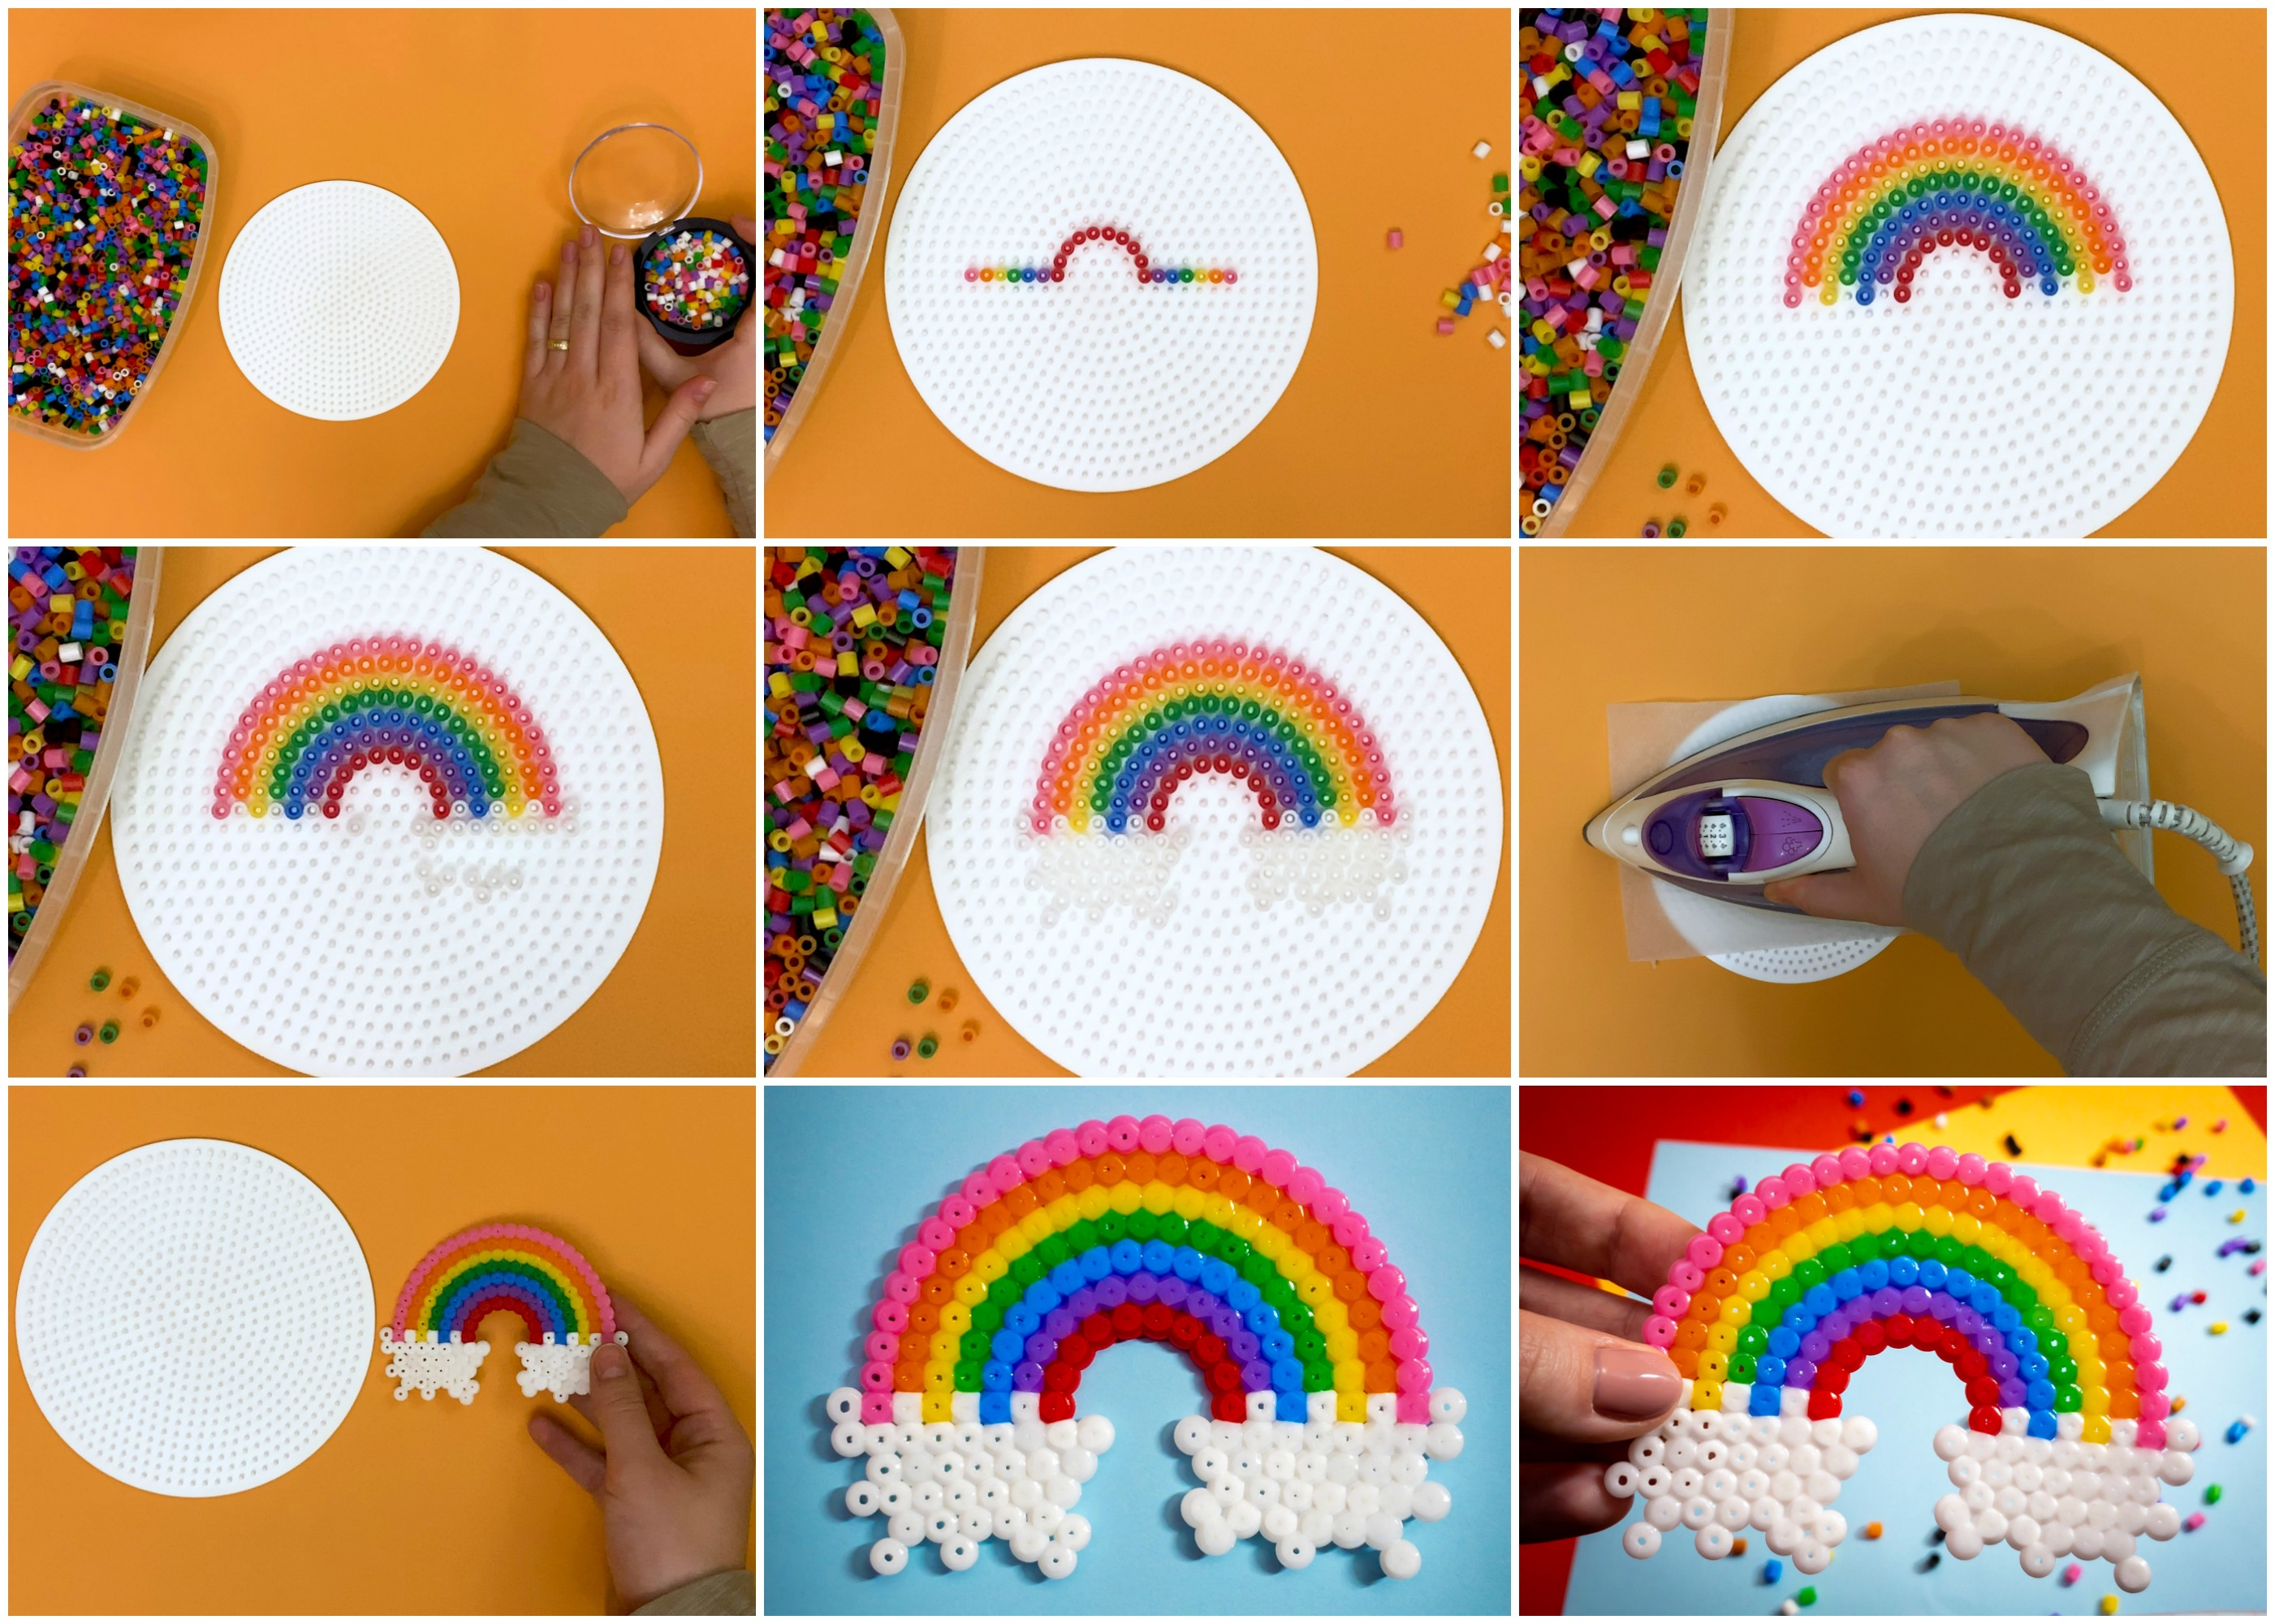 This perler bead rainbow will help kids develop fine motor skills, patience and artistic design while making a cute craft that's fun and colorful!